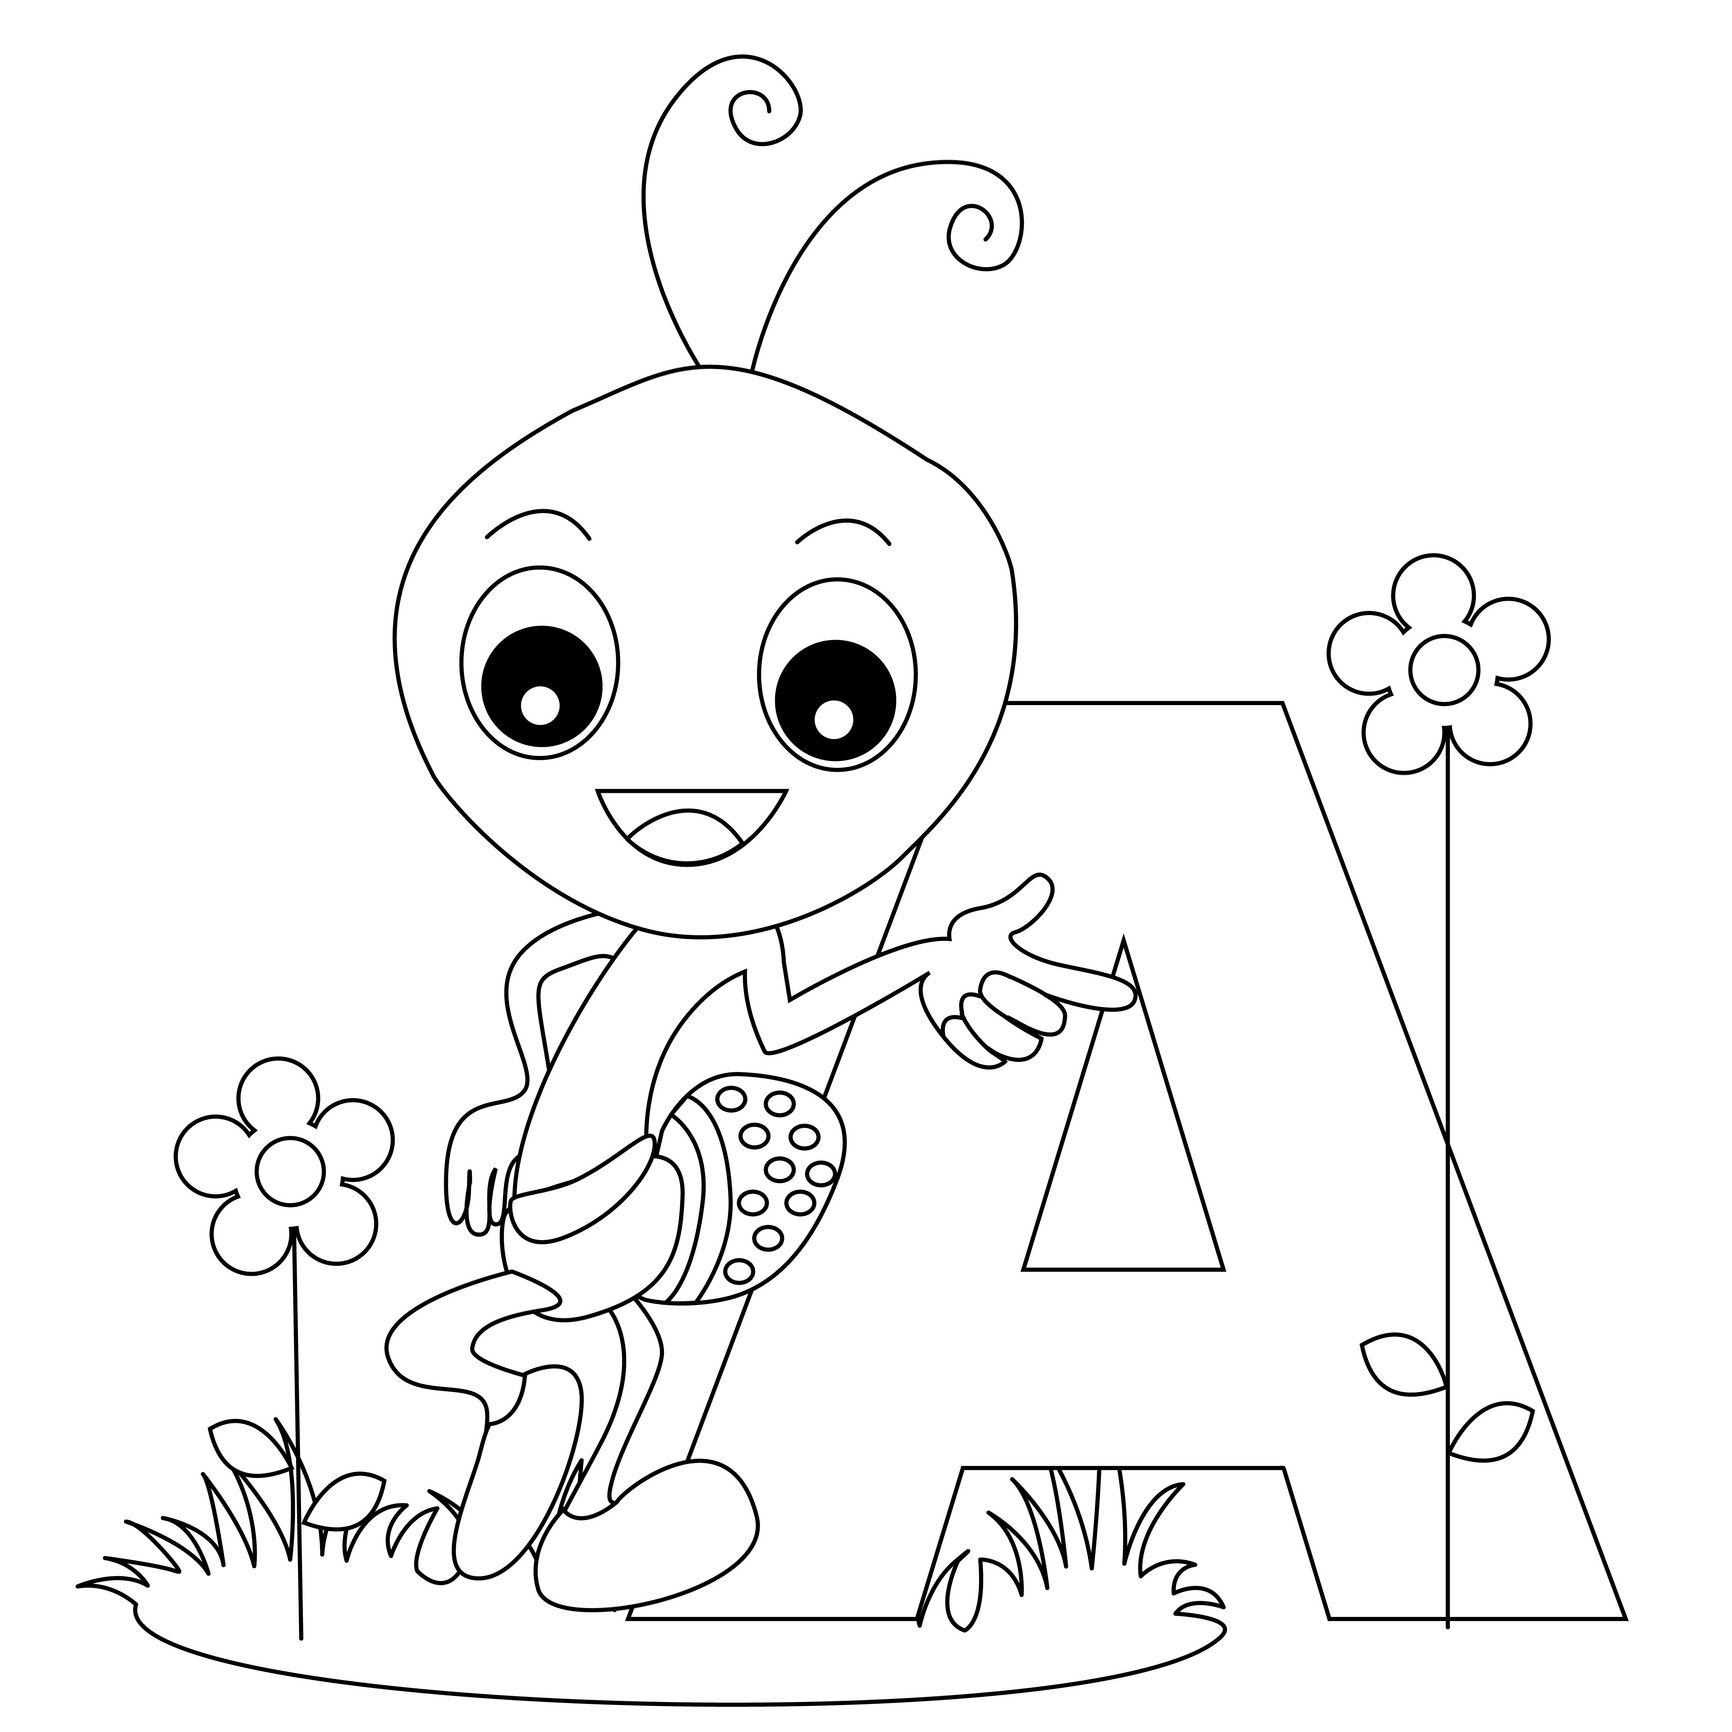 English Alphabet Coloring Pages : Animal alphabet letters letter a